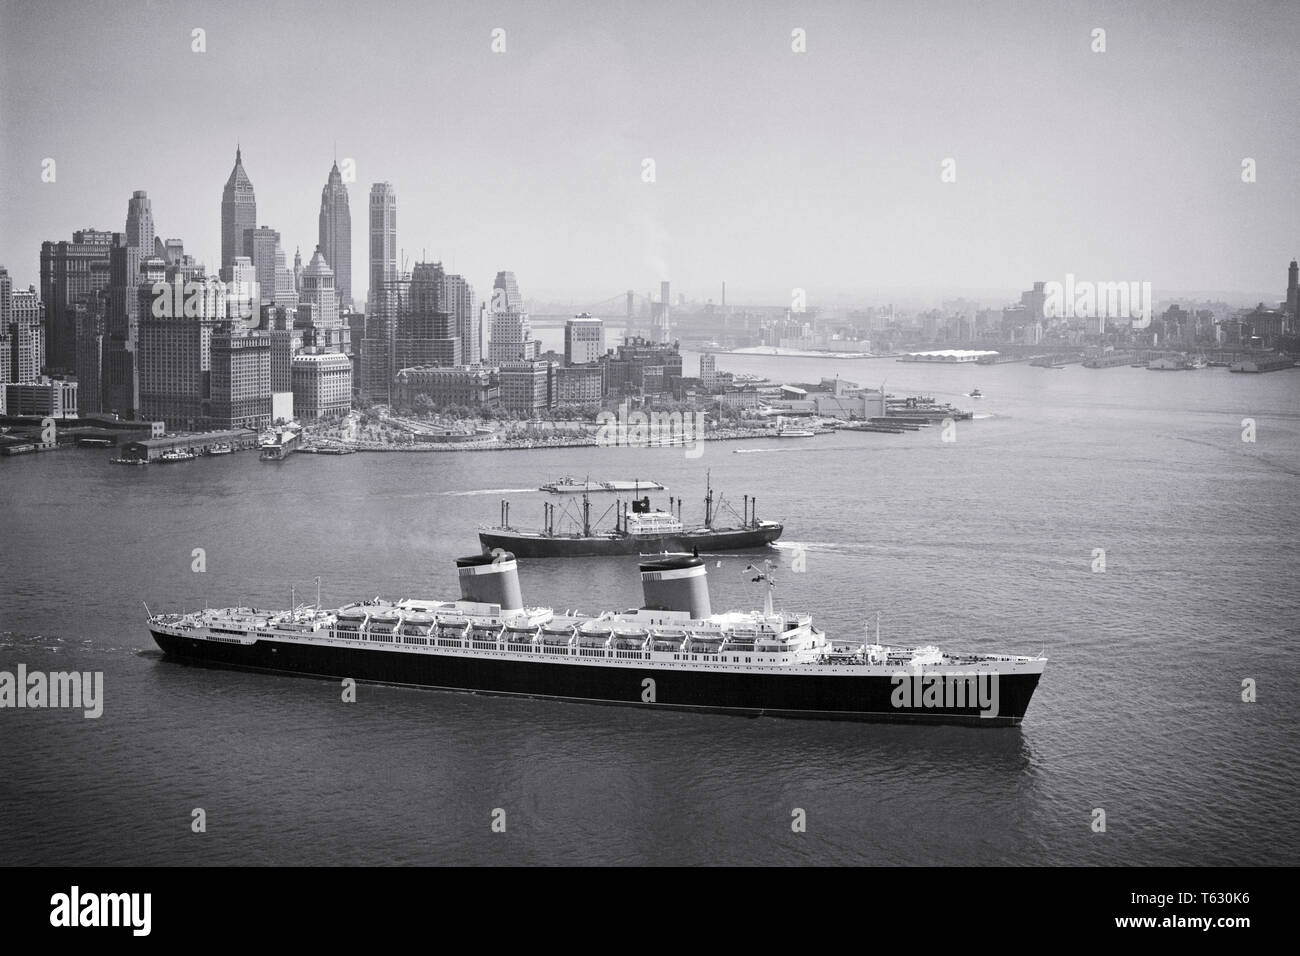 1950s PASSENGER LINER THE SS UNITED STATES HEADS OUT TO SEA FROM NEW YORK HARBOR NYC USA - s636 HAR001 HARS FASTEST MANHATTAN ISLAND BLUE RIBAND GROWTH OCEAN CROSSING OCEAN LINER TRANSATLANTIC AERIAL VIEW BLACK AND WHITE HAR001 HUDSON RIVER OLD FASHIONED VESSEL - Stock Image